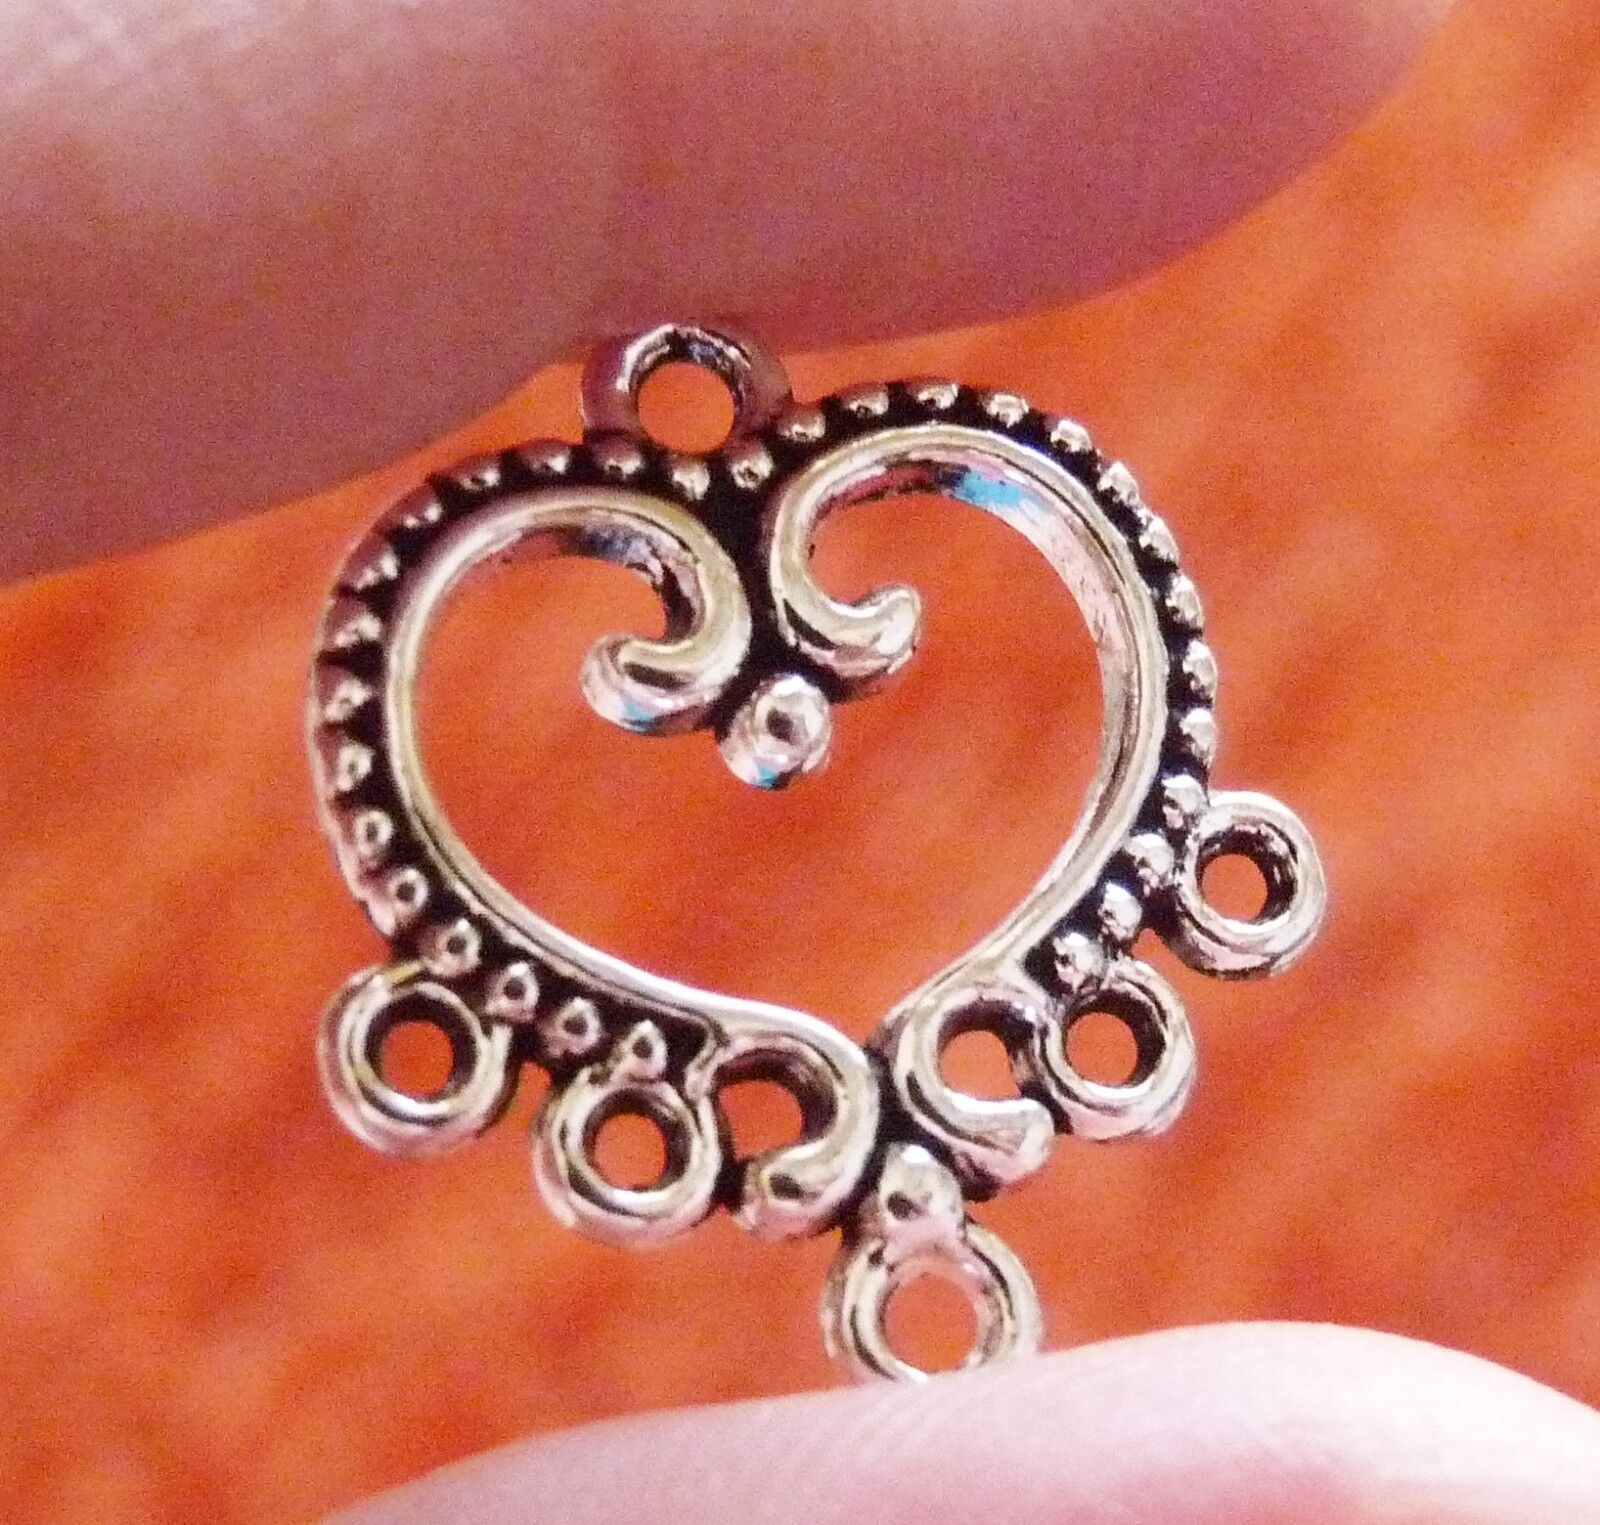 6Pcs Filigree Chandelier Earring Findings 5 Hole Pendant Necklace Connector